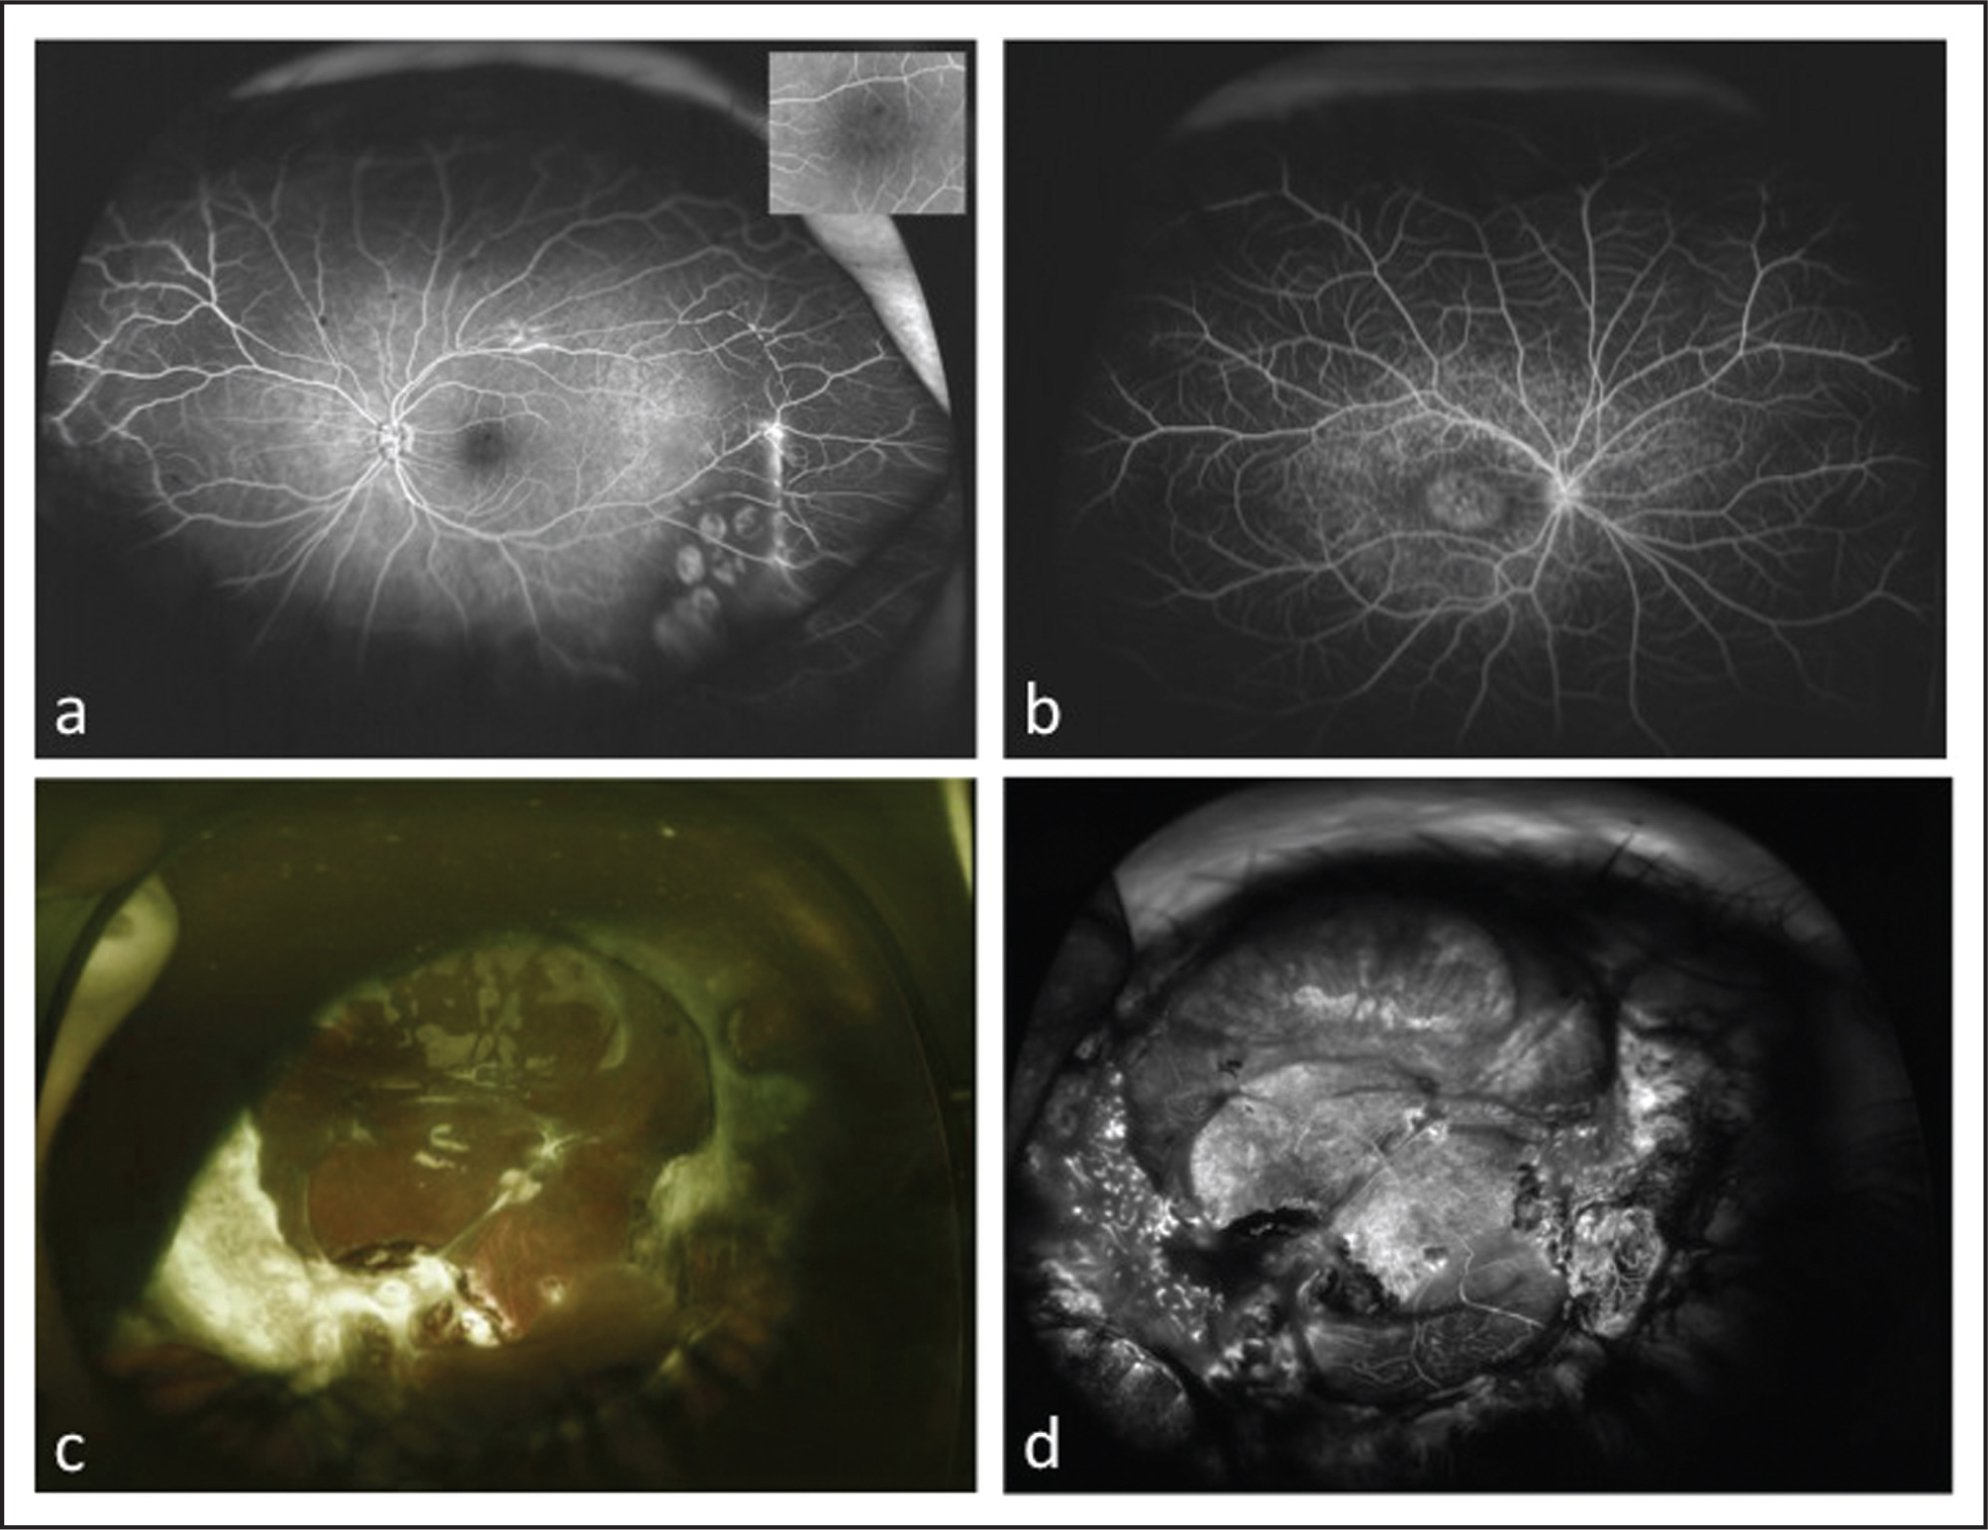 (A) Angiogram of X-linked retinoschisis with macular stippling (inset) and peripheral hyperfluorescence at the edge of the schisis cavity in patient 10. (B) Angiogram of Stargardt disease with macular atrophy (inset), a silent choroid, and staining of flecks in the posterior pole in patient 11. (C) Color fundus photograph of an eye after trauma with silicone oil and proliferative vitreoretinopathy in patient 11. Note the nose and iris artifact in the temporal fundus. (D) Angiogram highlighting the extent of scarring and severity of injury in patient 12.